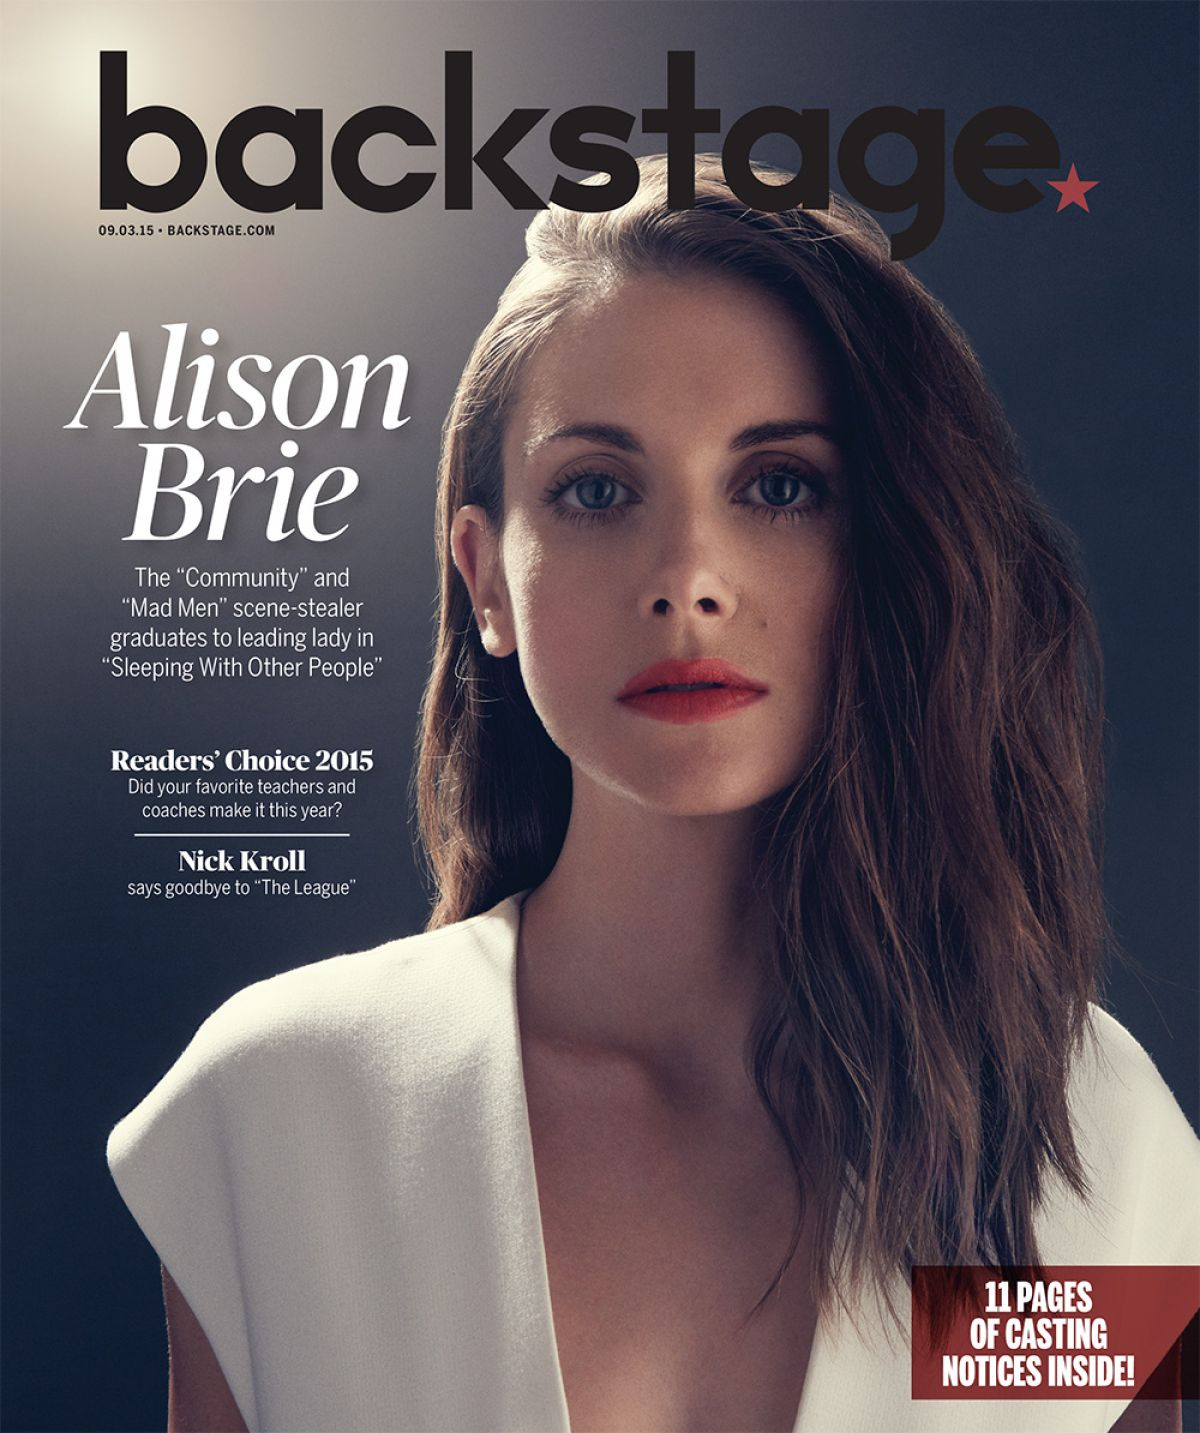 ALISON BRIE in Backstage Magazine, September 2015 Issue